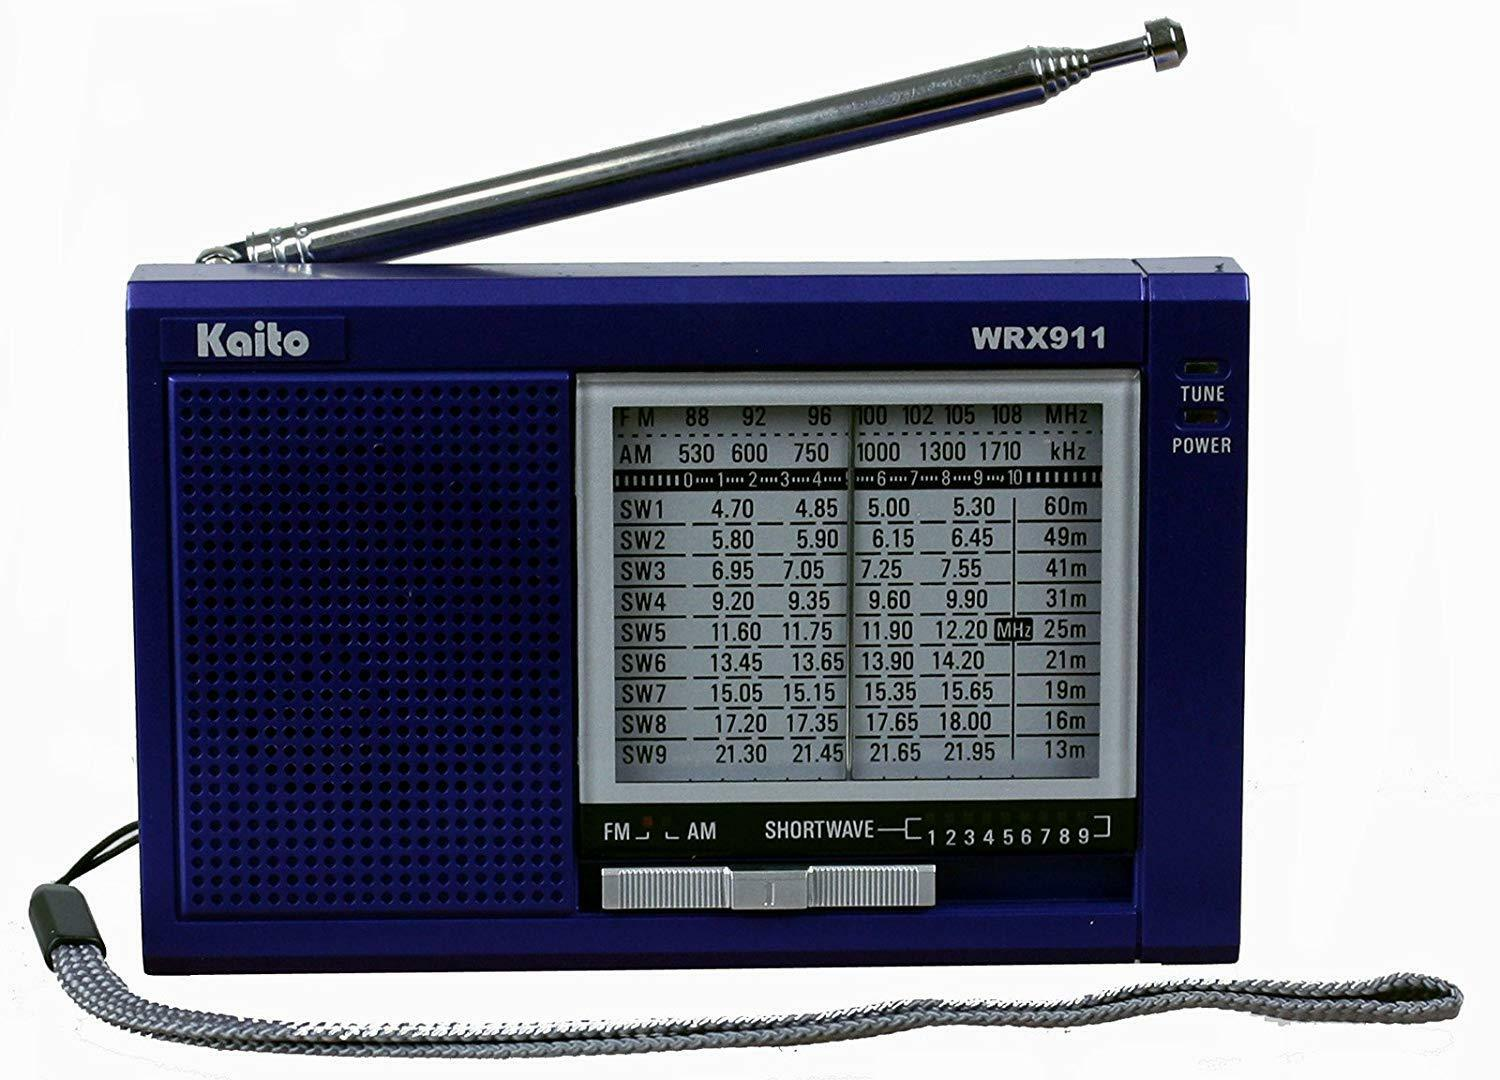 Kaito WRX-911 Portable AM/FM Shortwave Radio Receiver Blue